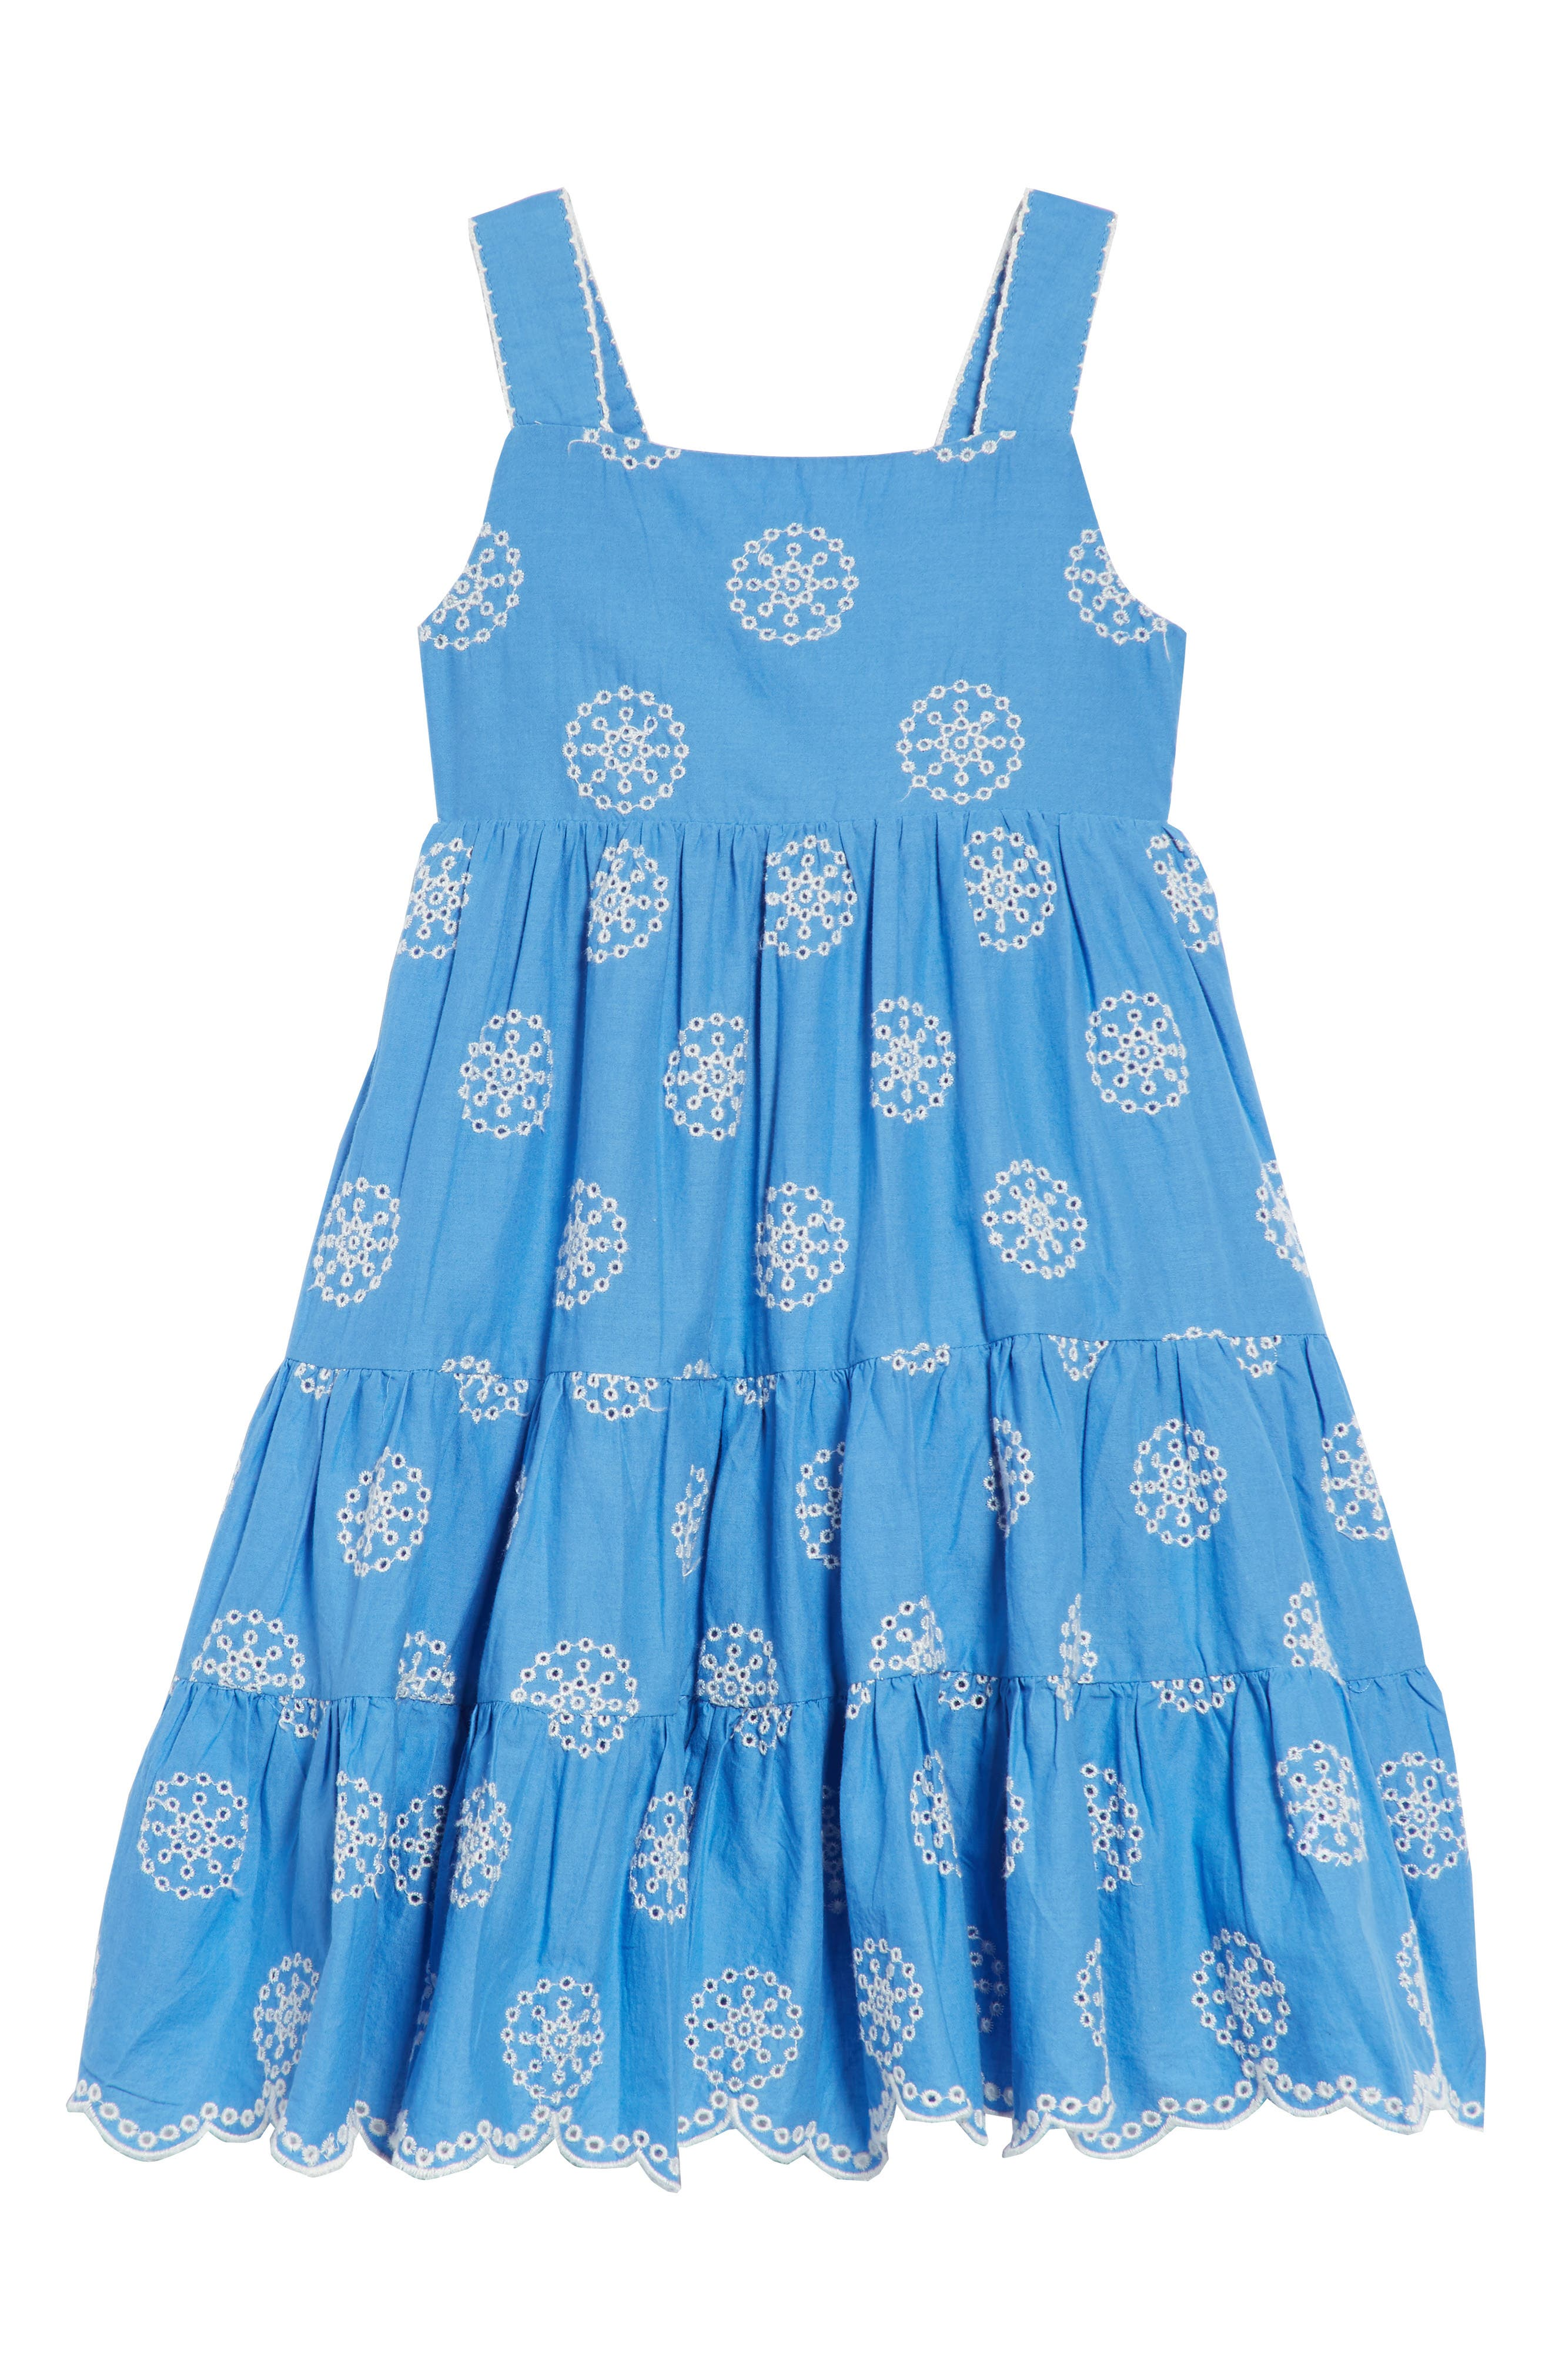 Twirly Tiered Dress,                             Main thumbnail 1, color,                             424